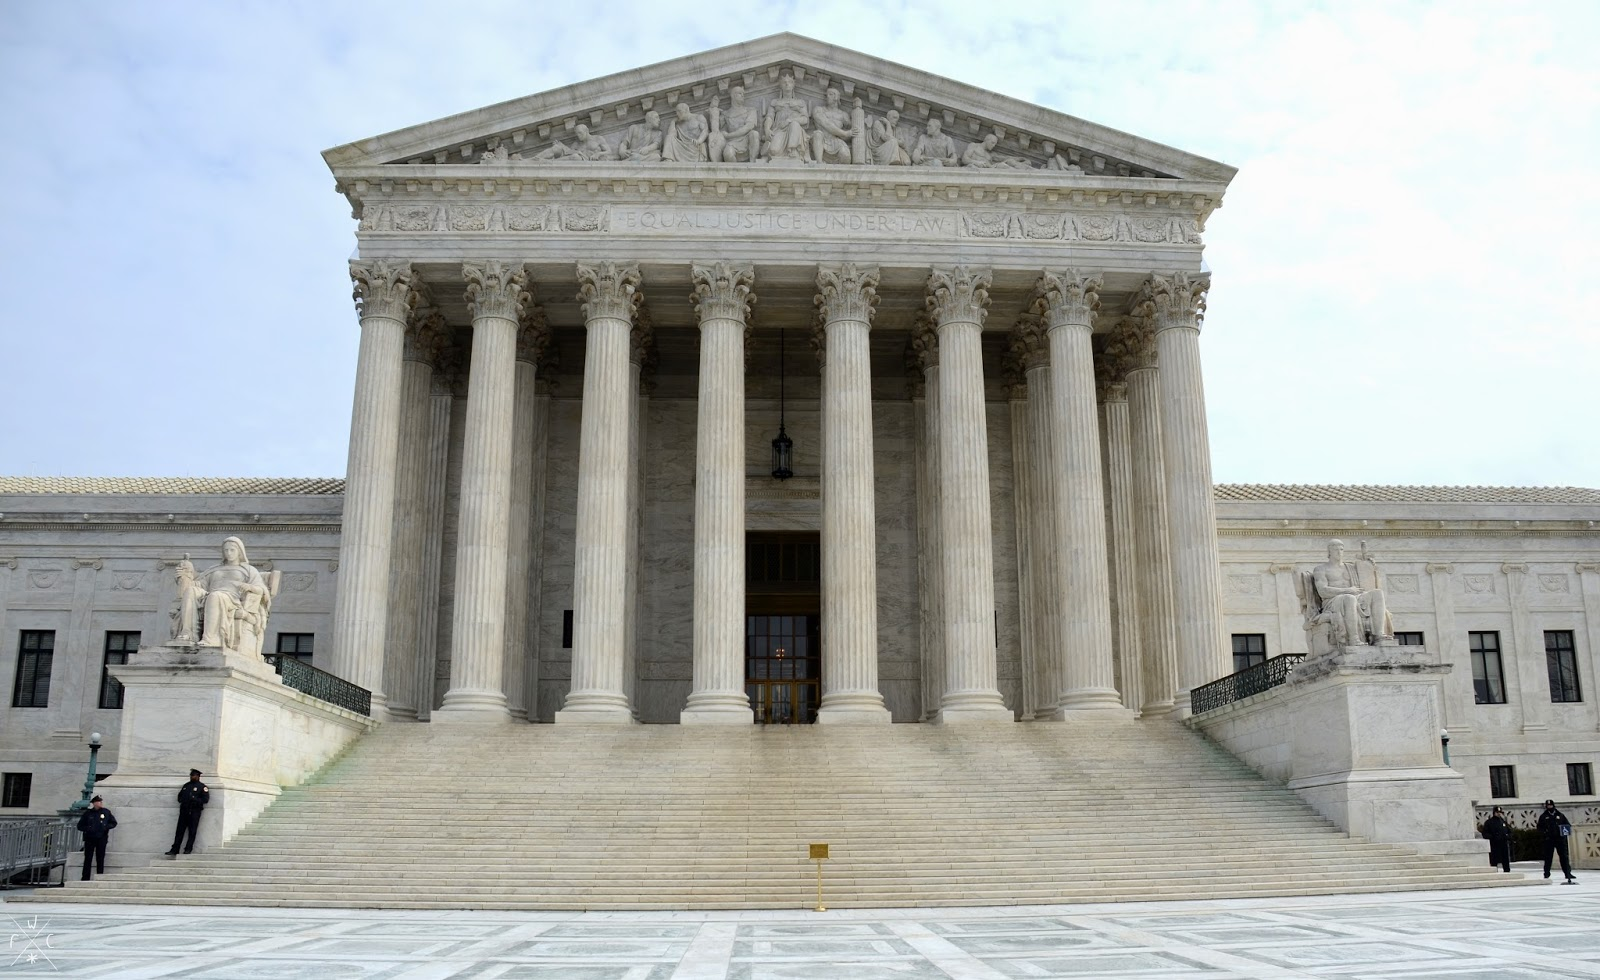 Supreme Court of the United States, Washington DC, USA